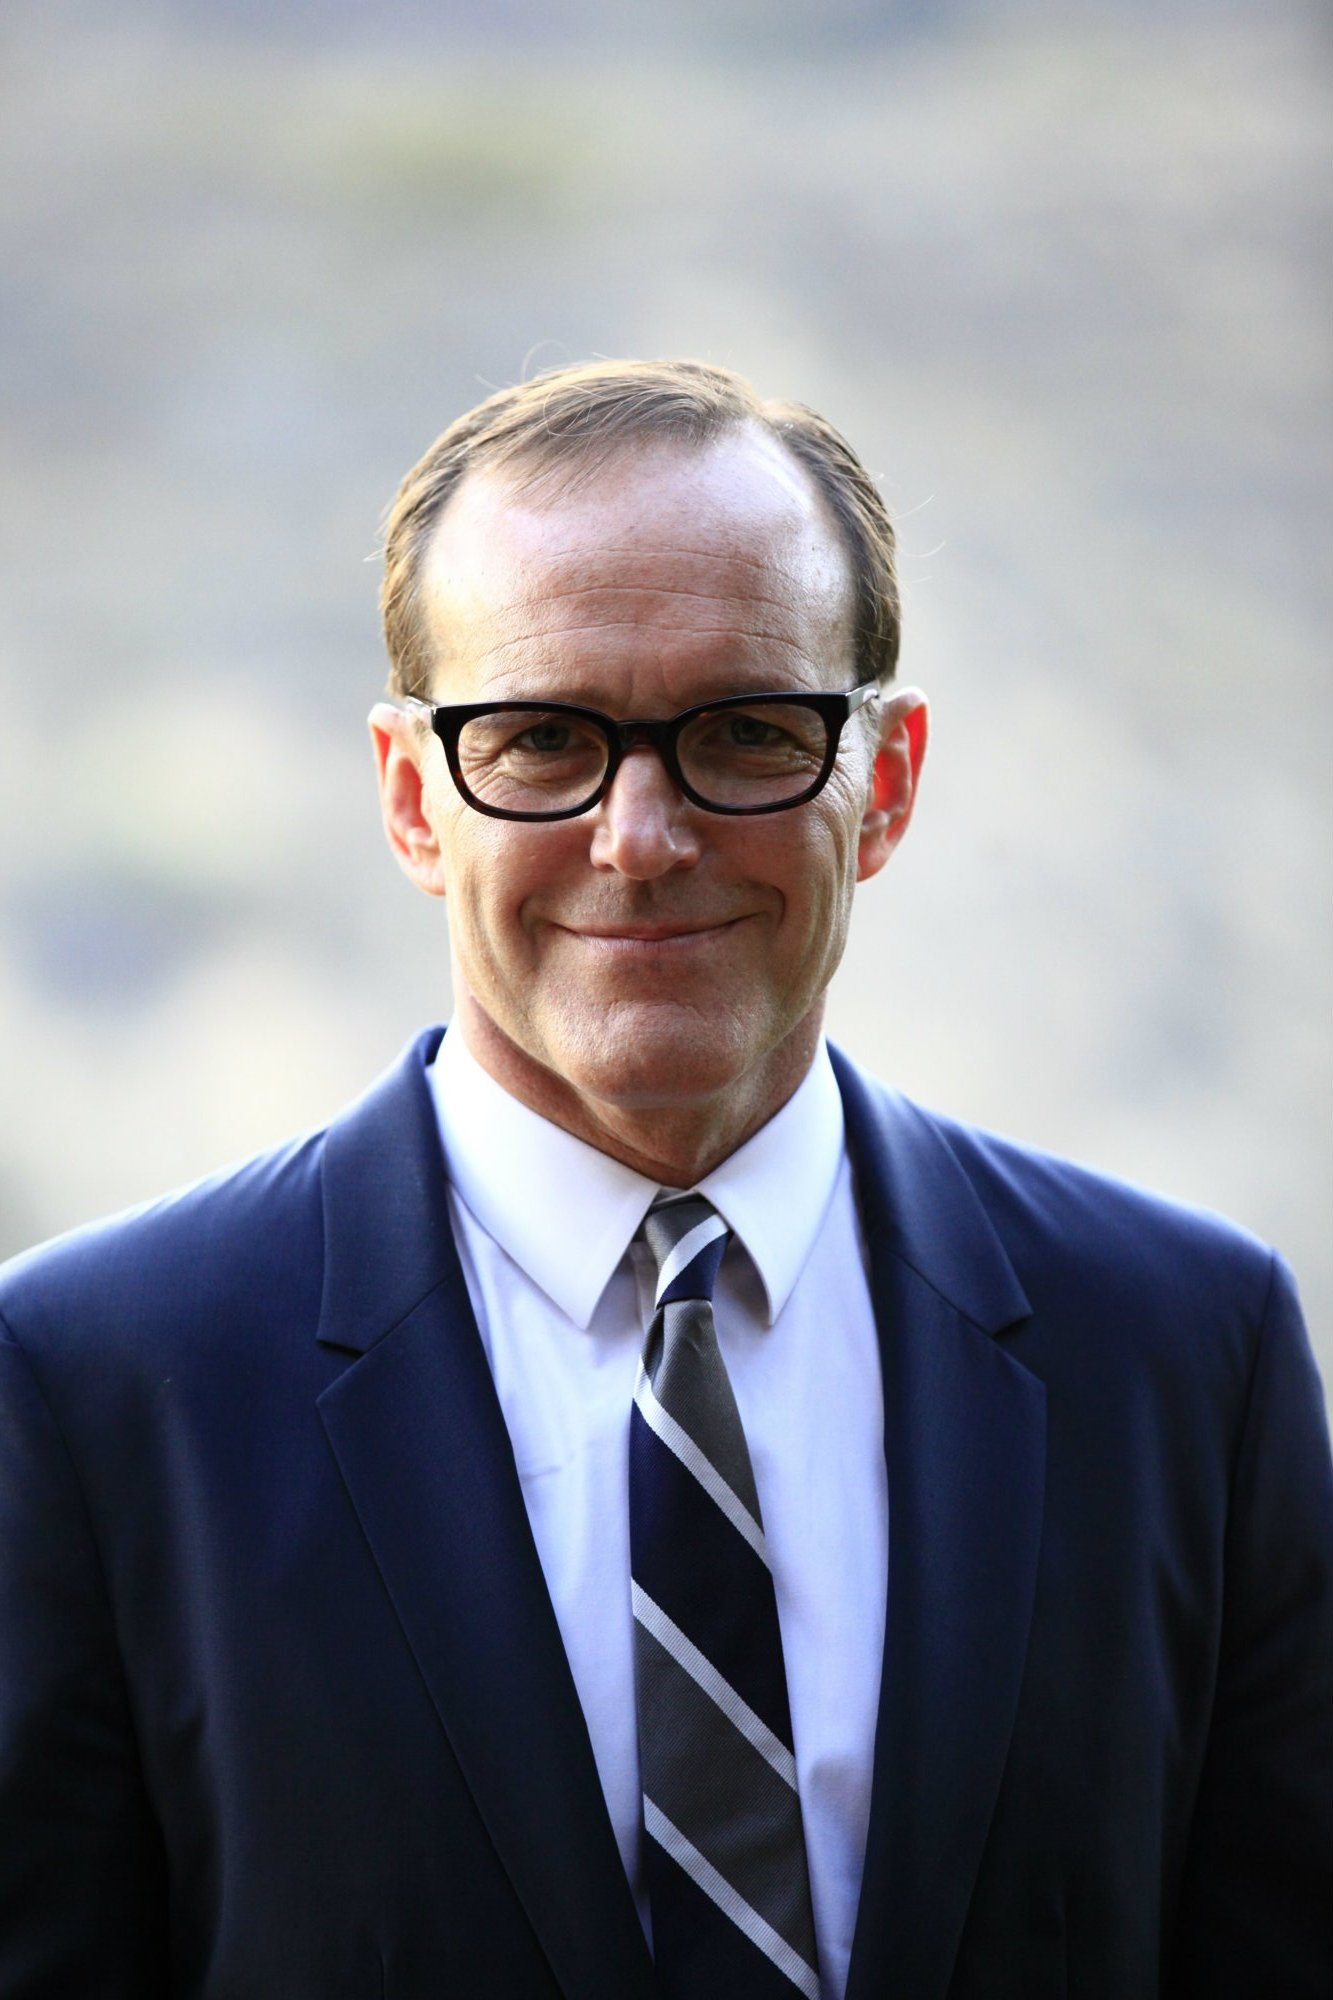 Clark Gregg (The Avengers/Marvel's Agents of S.H.I.E.L.D.)